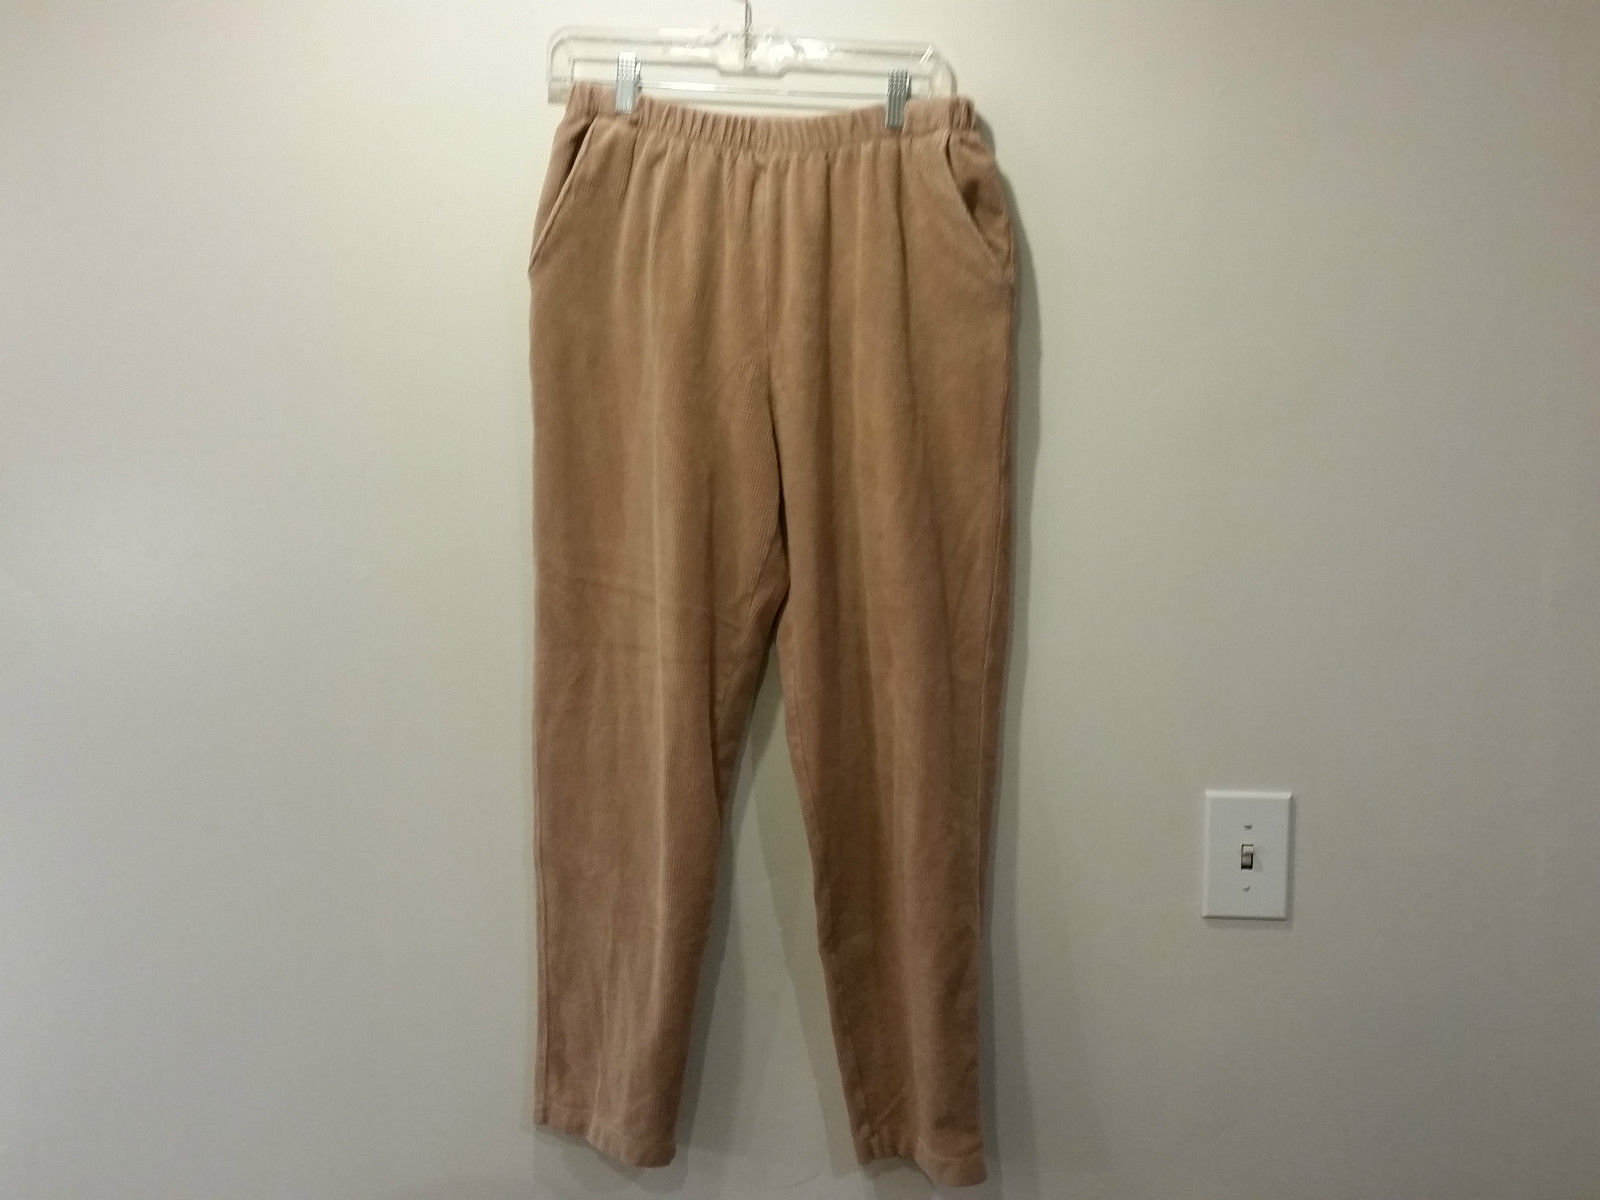 Light Brown Lands End Stretchy Elastic Waist Casual Pants Side Pockets 10 to 12